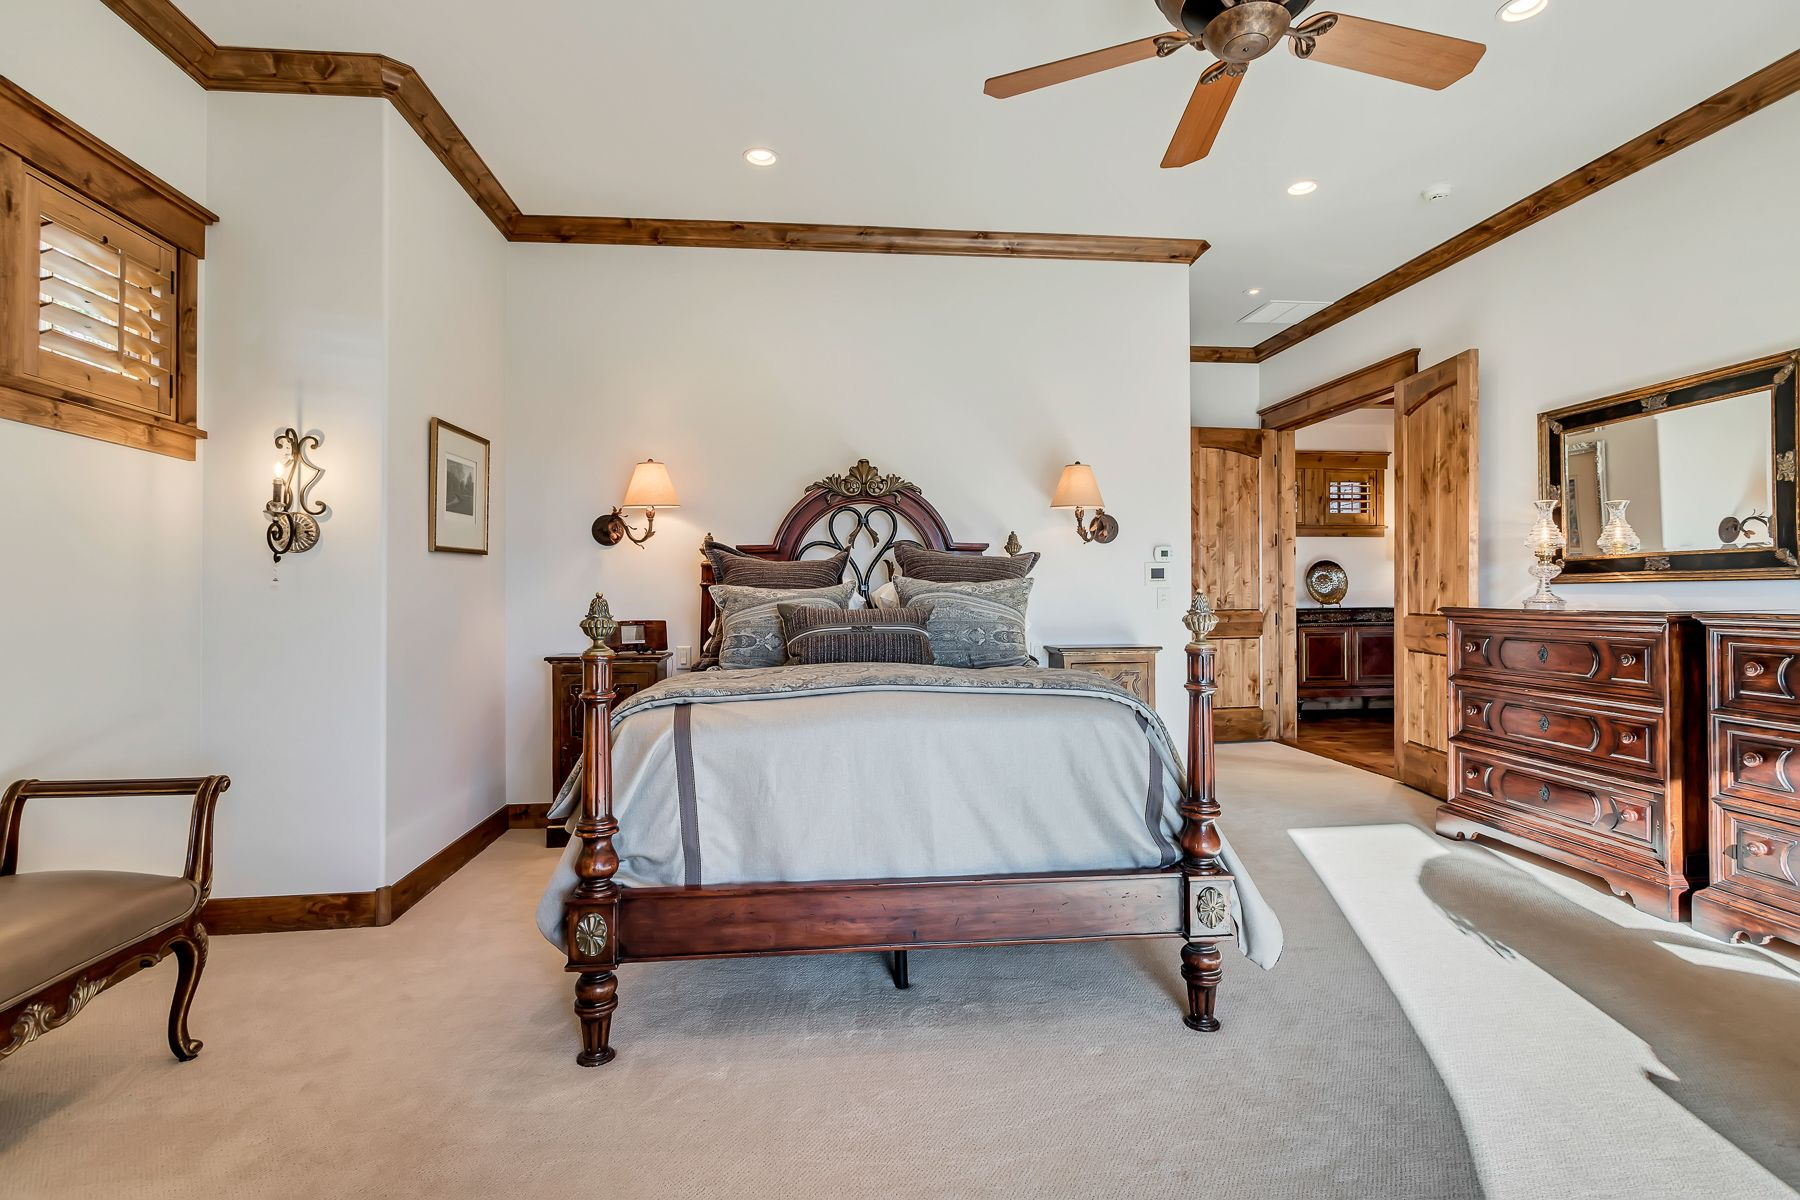 The main-level owner's suite, complete with fireplace and steam shower, boasts trophy views and a private setting creating a personal sanctuary for the owners of this one-of-a-kind Park City home. #WindermereUtah #Bedroom #OwnersSuite #OwnerBedroom #BedroomDesign #BedroomDecor #LuxuryHome #DreamHome #LuxuryLiving #LuxuryLifestyle #ParkCityHomes #UtahHomes #ParkCity #BedroomInspiration